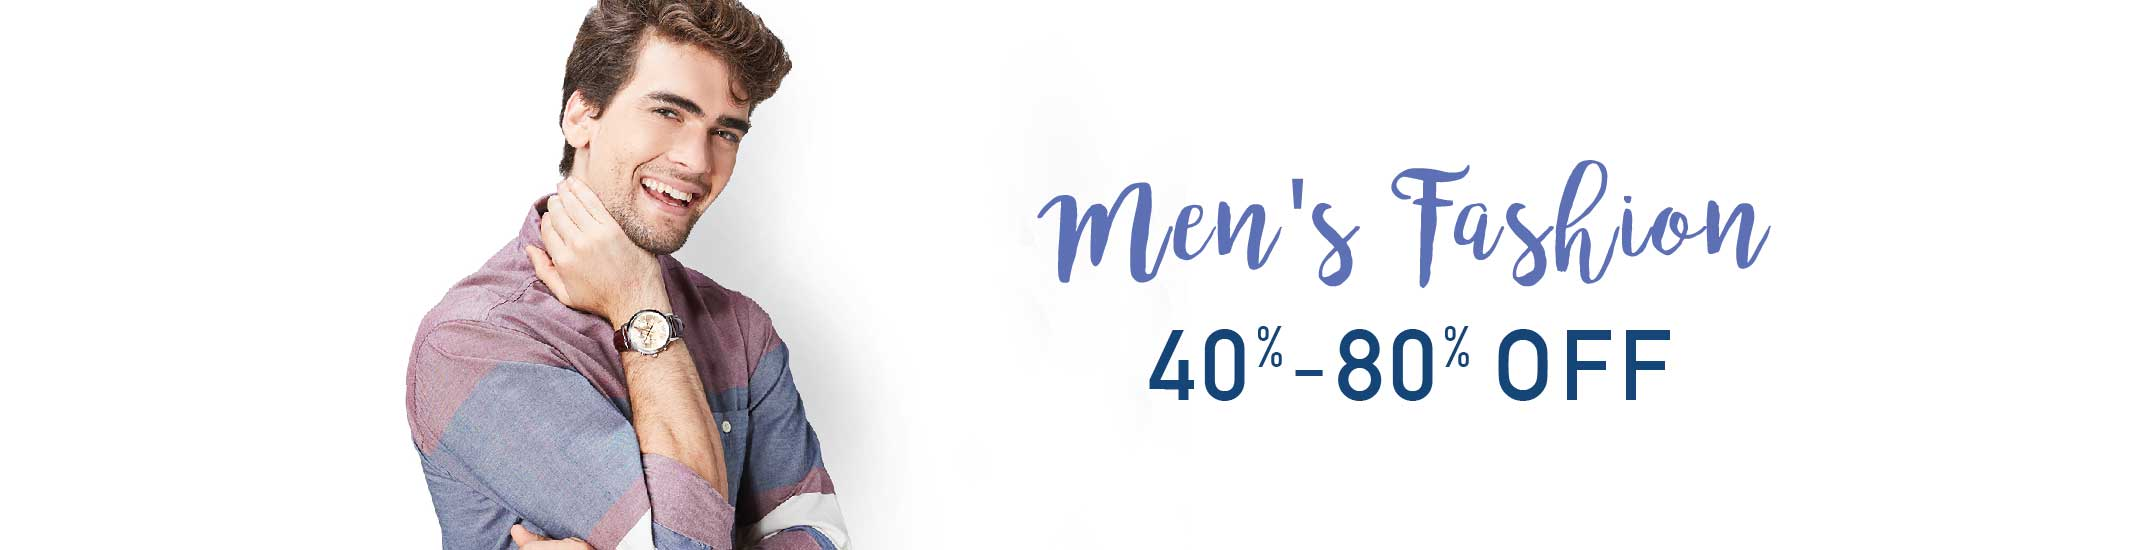 Great Indian Festival: Upto 80% Off on Men's Fashion + Extra 10% Off on SBI Bank Debit & Credit Cards (29th Sept - 4th Oct)